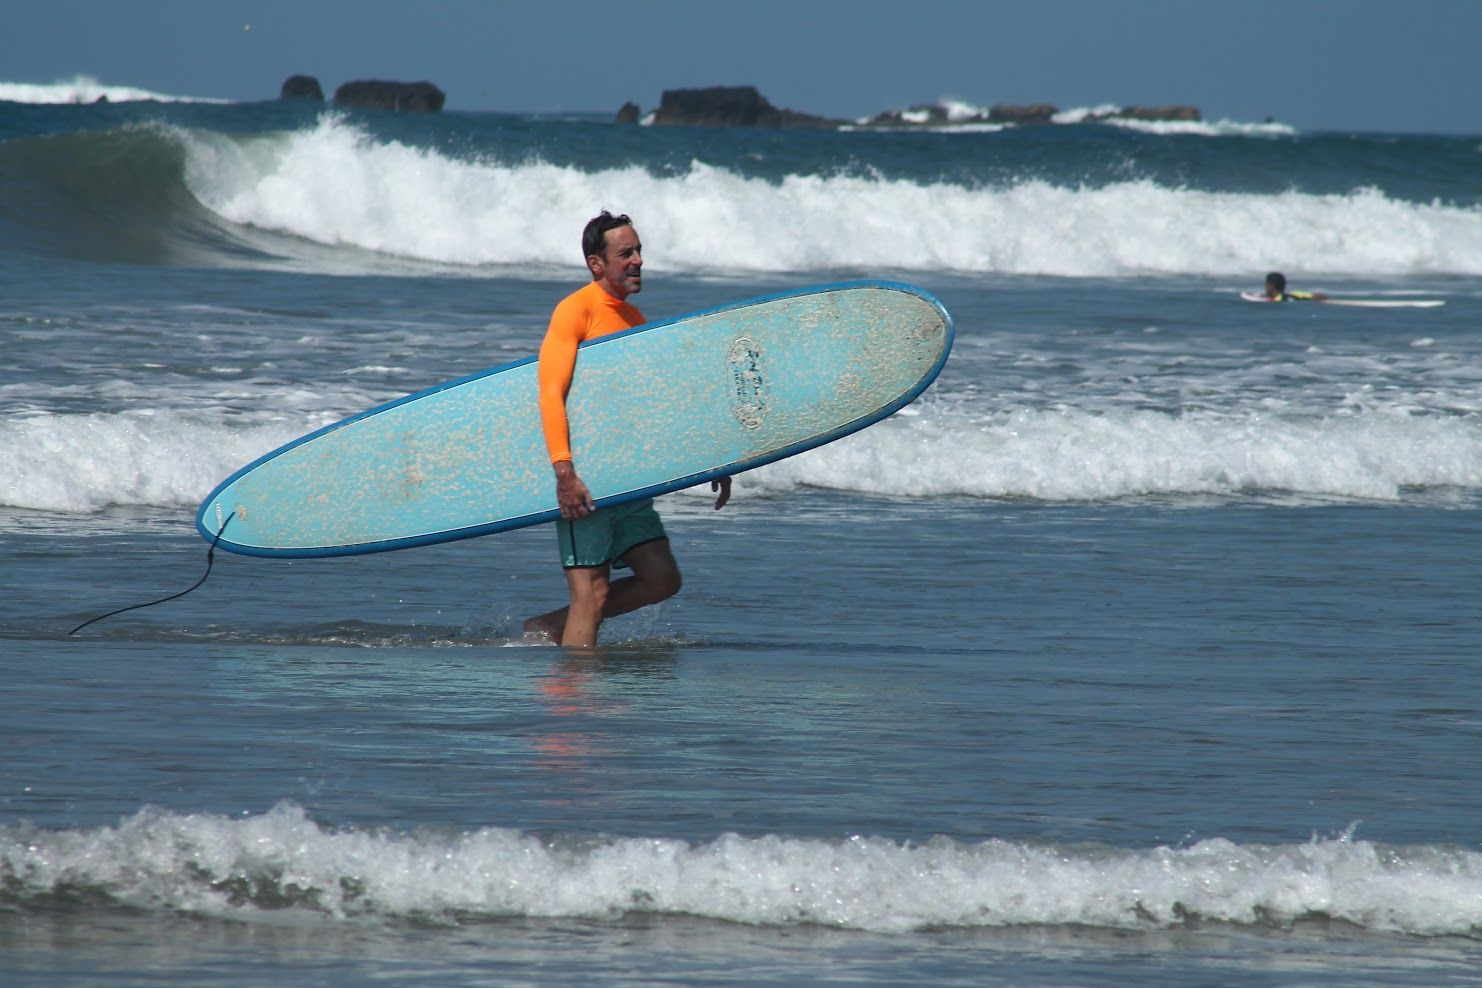 Costa Rica - Surfer with Board